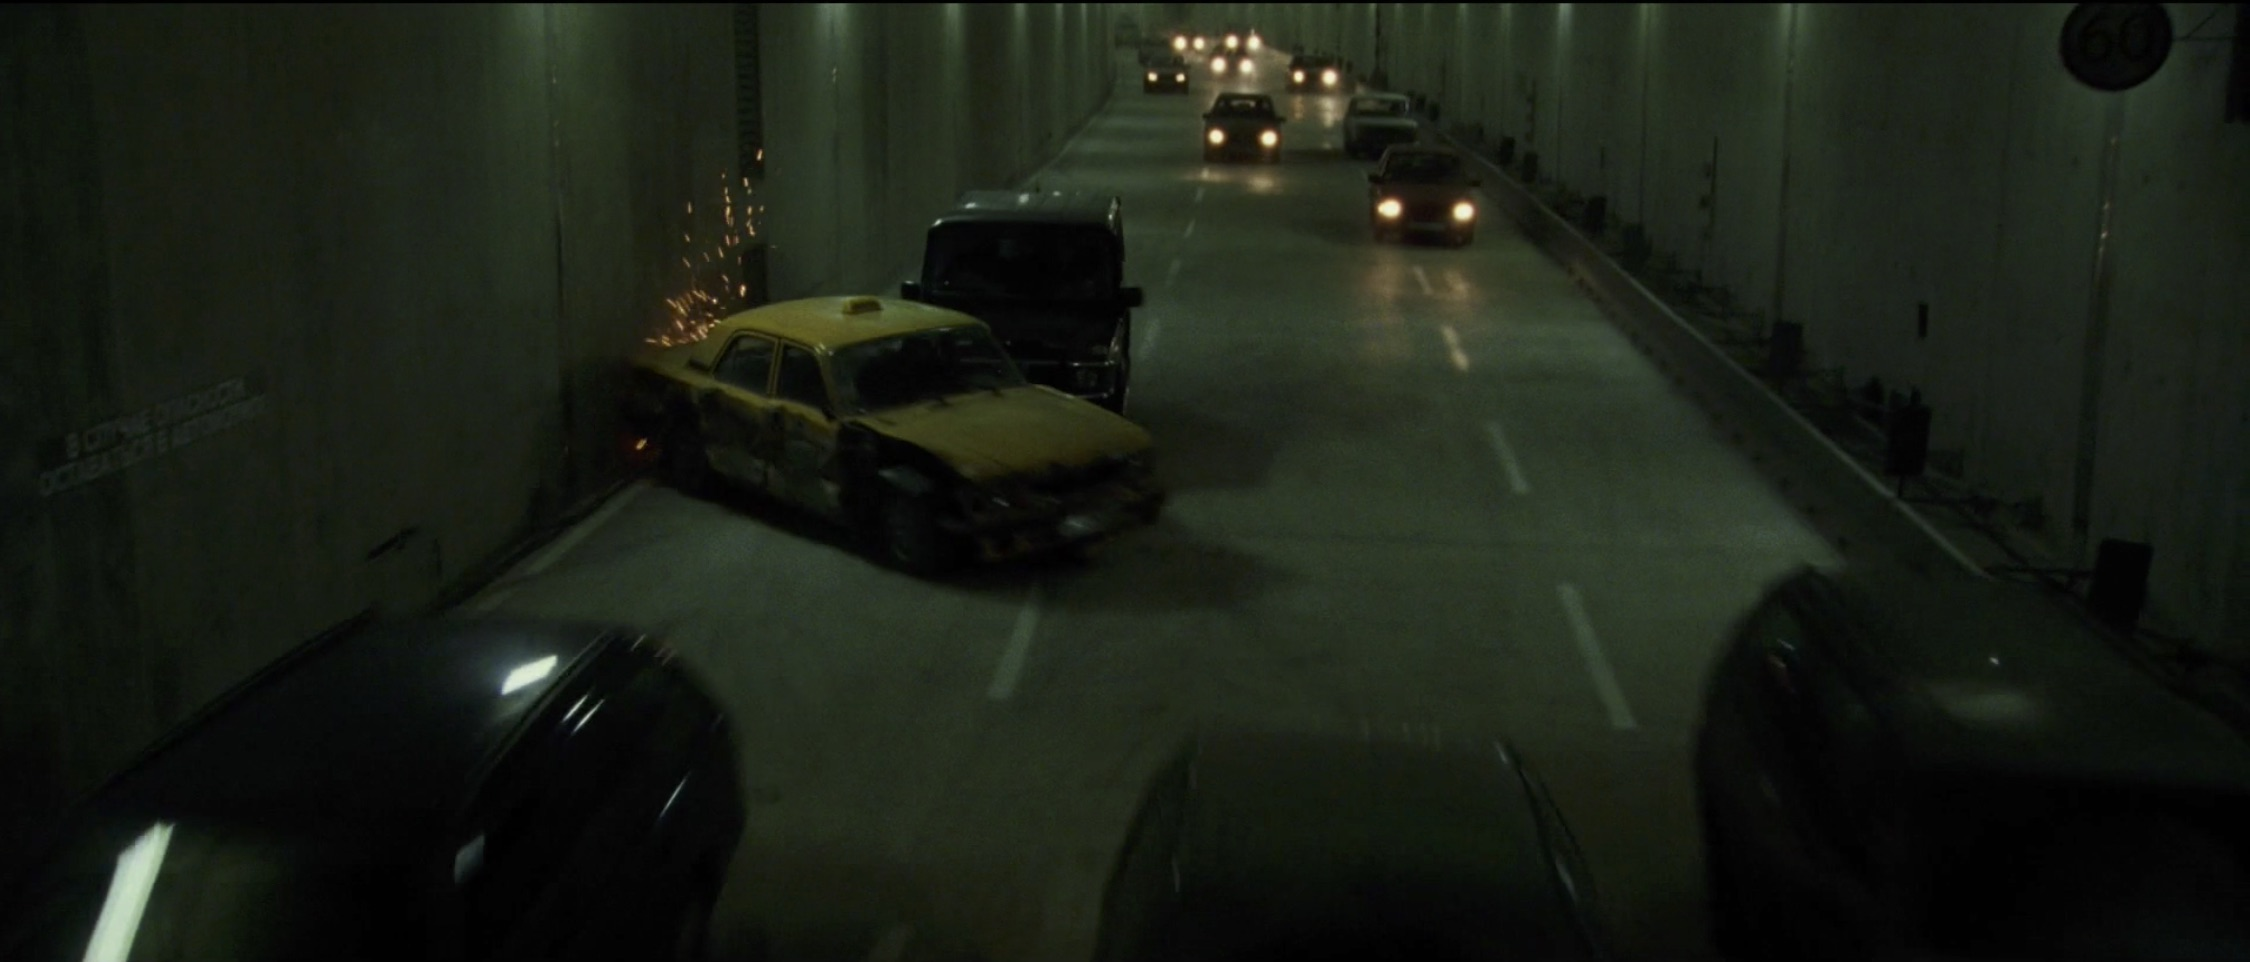 Bourne Supremacy Car Chase Taxi Spin out